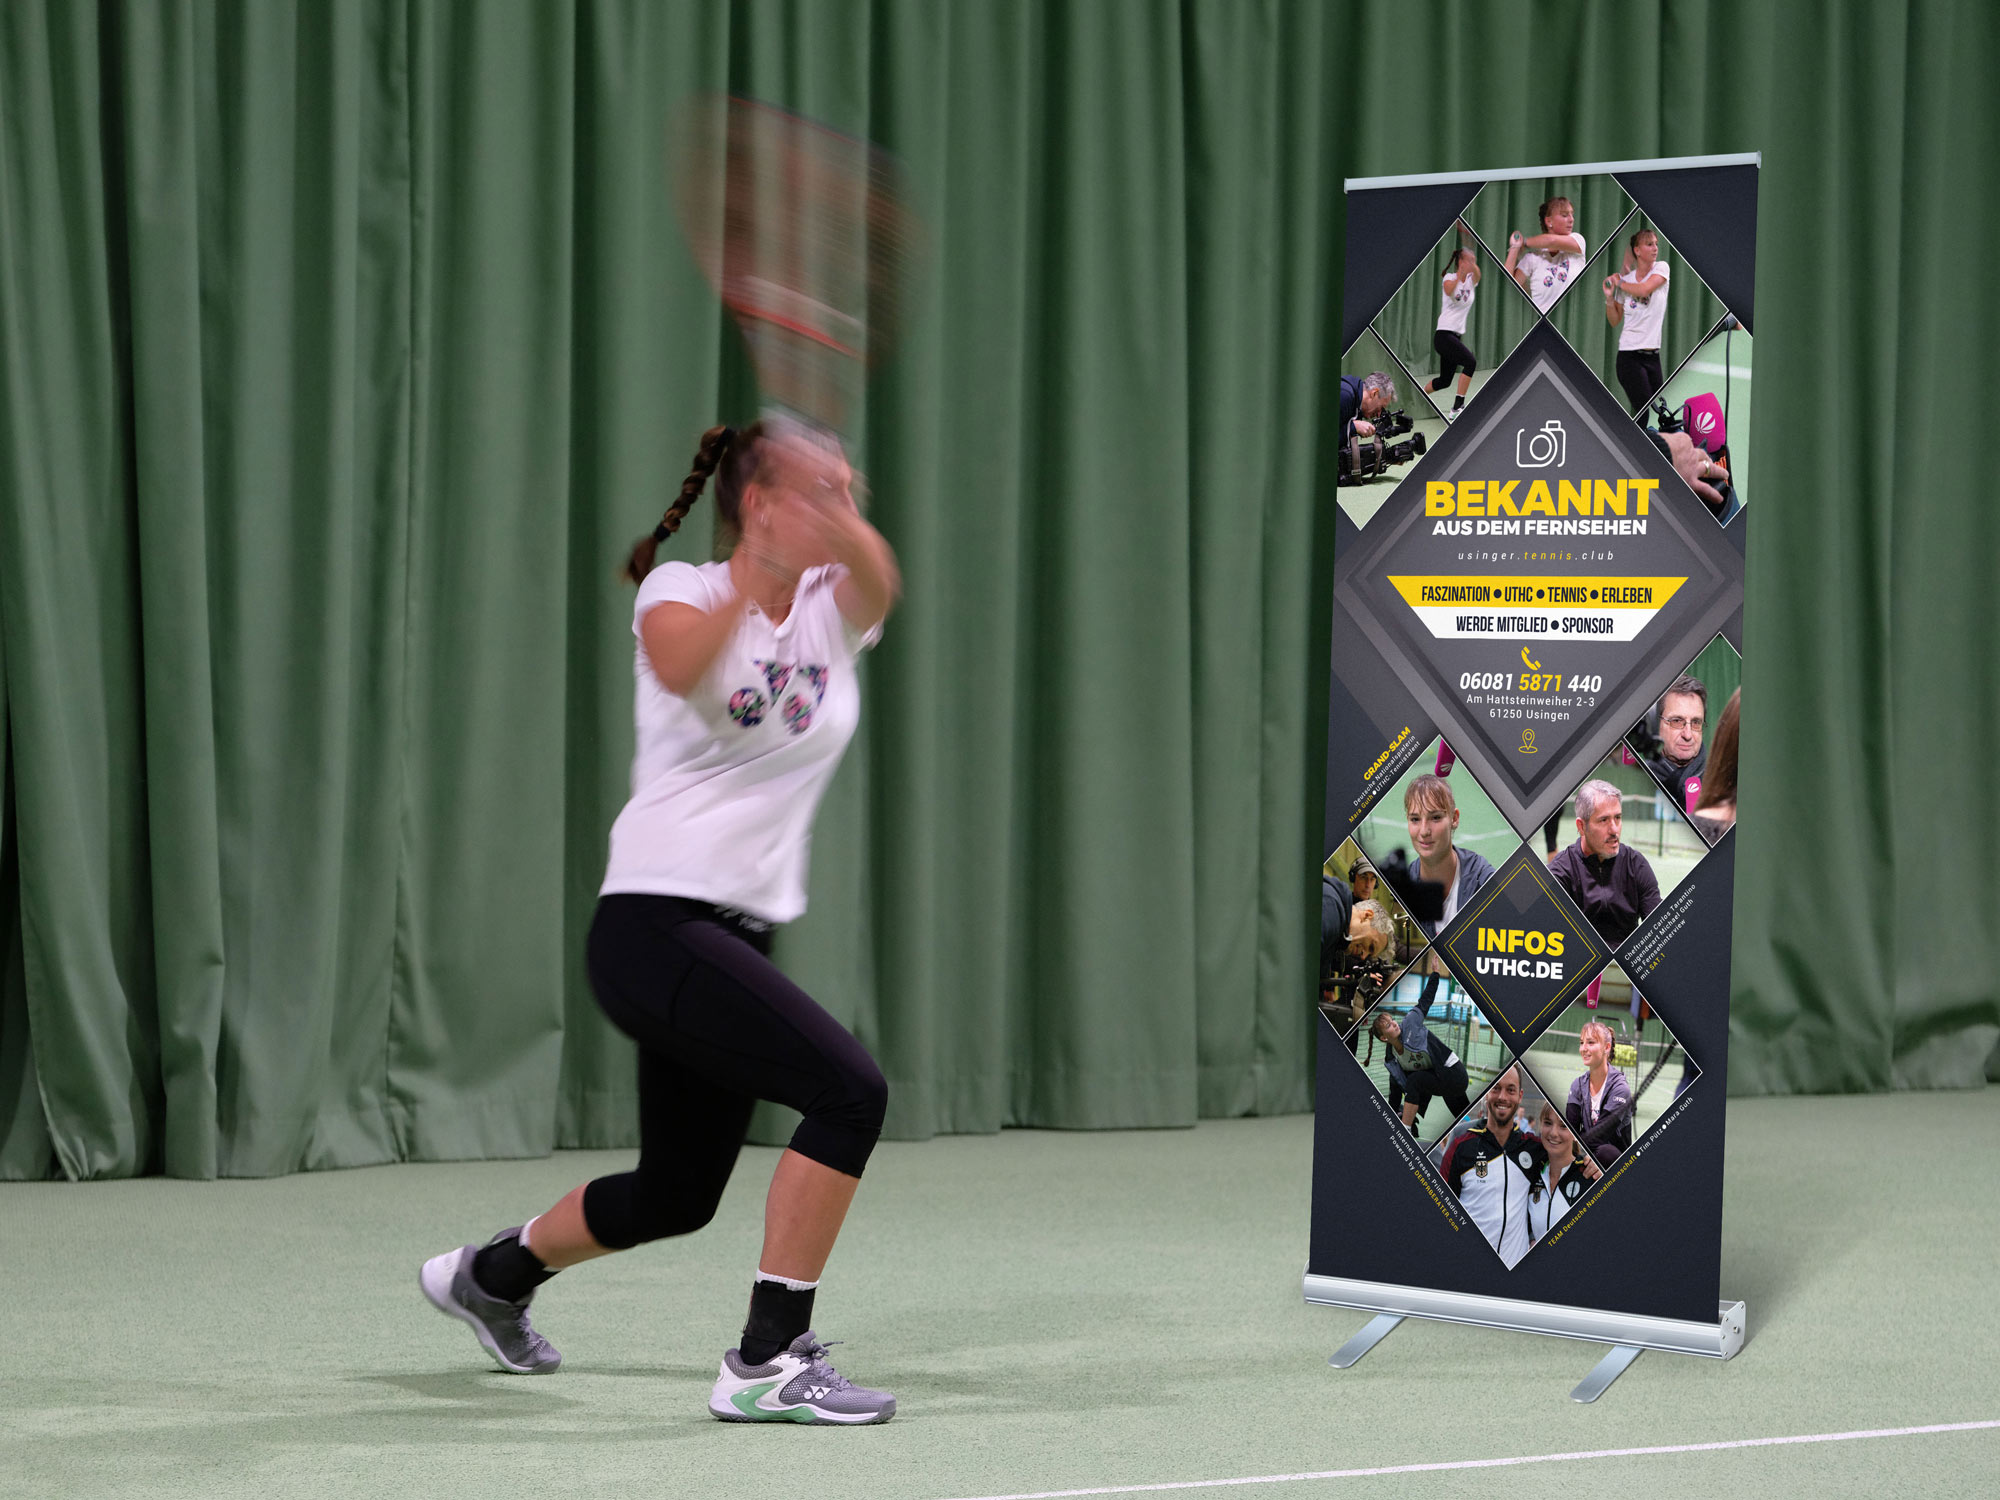 Tennis Sponsoren Paket 4 - Mobile Roll-Ups